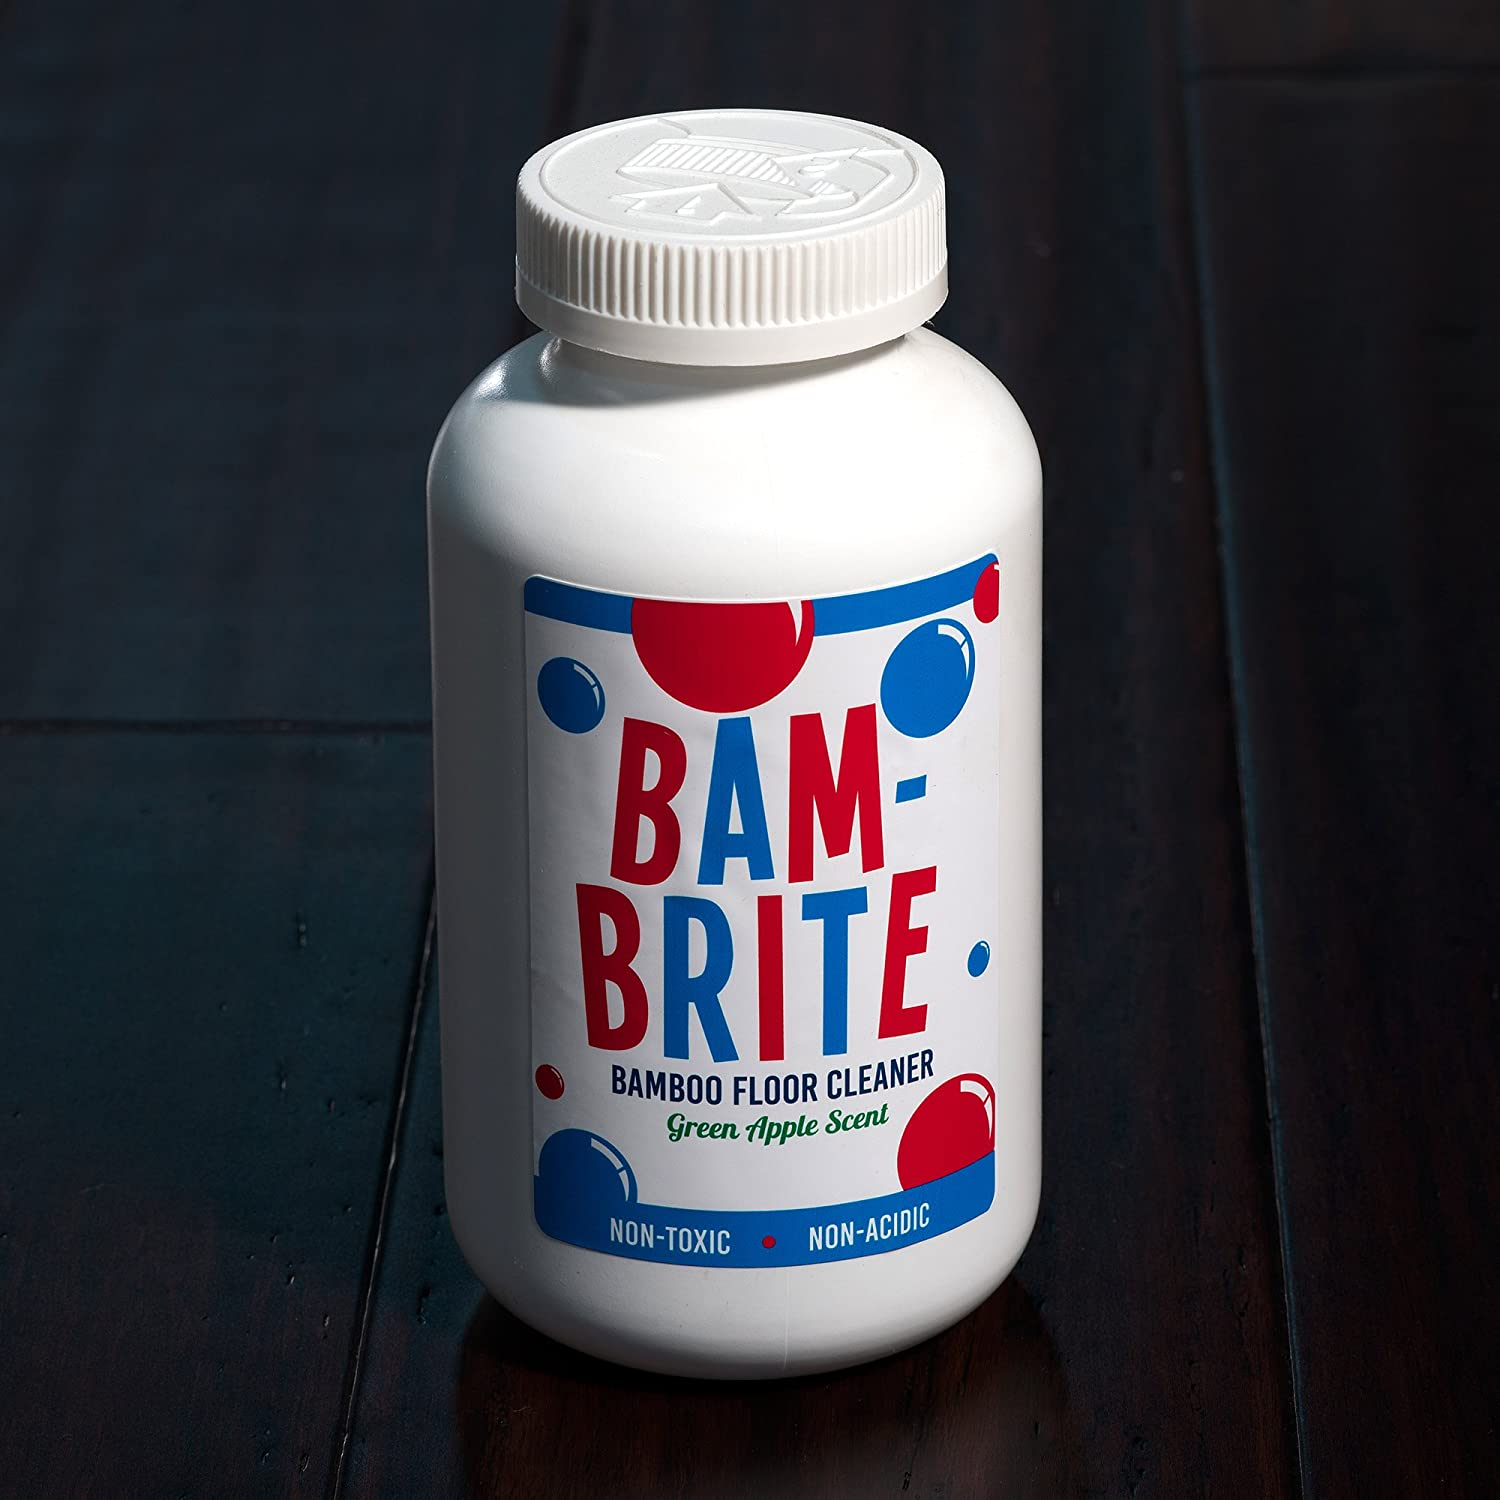 Amazoncom Bam Brite Bamboo Floor Cleaner Concentrate Value Size 25Oz Home